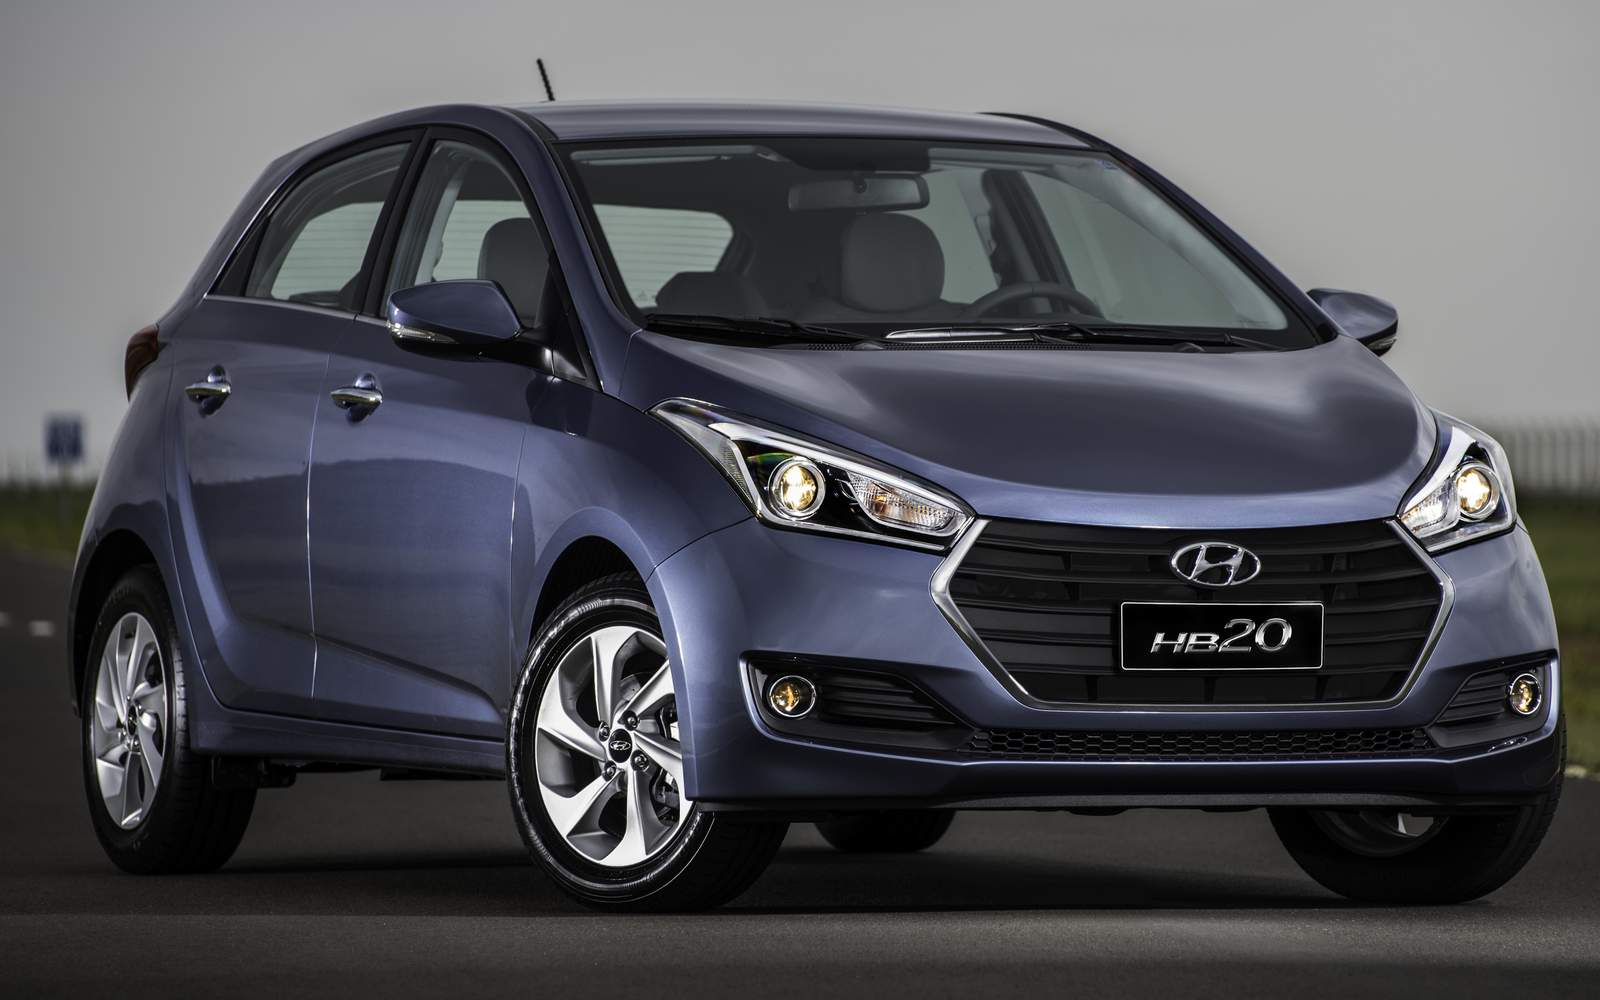 c0a086ee30fd8 Updated 2016 Hyundai HB20 Launched in Brazil, 1-Liter Turbo Flex ...